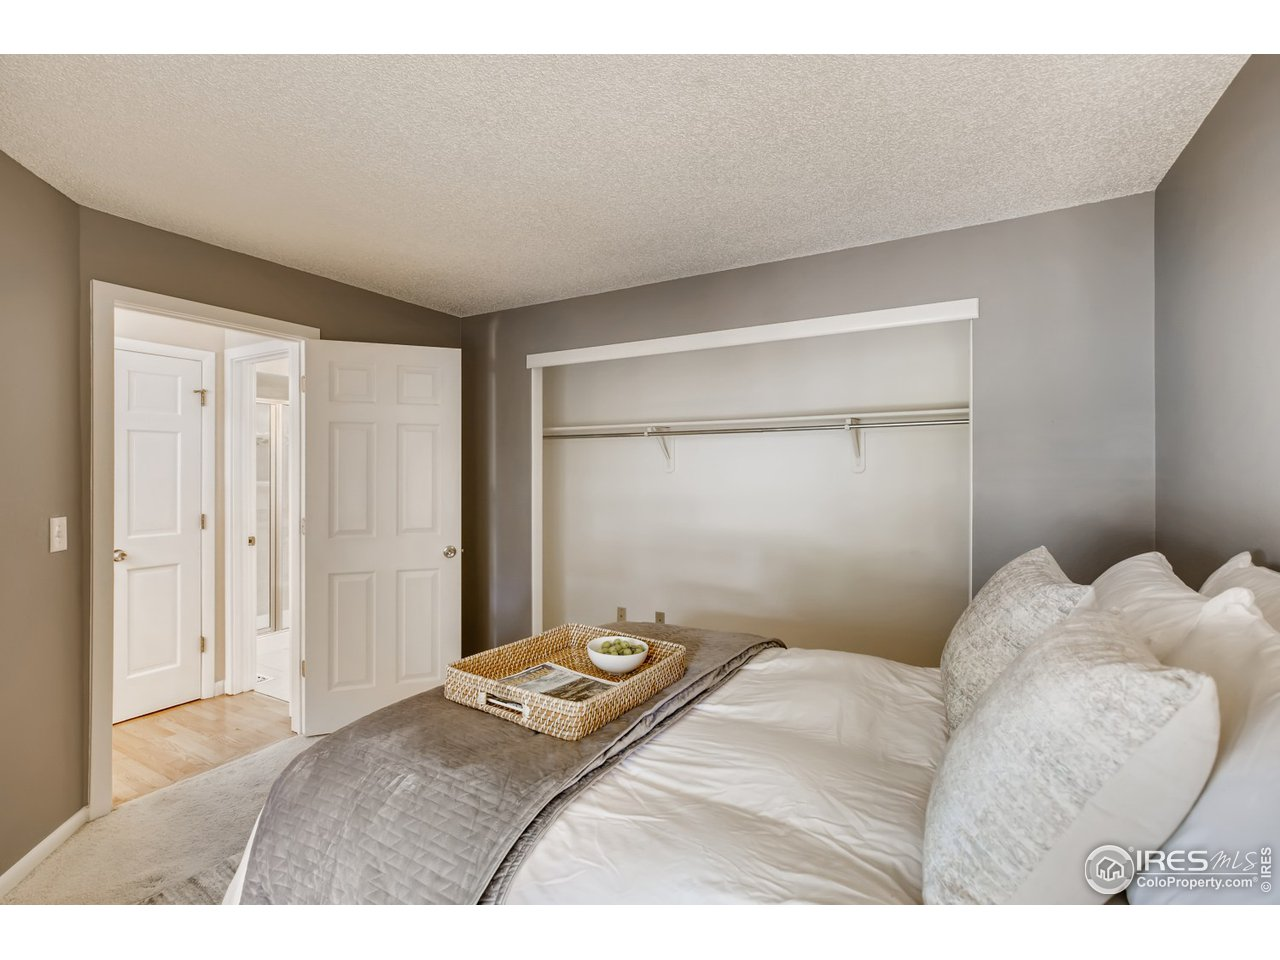 Main bed, looking to Closet Space